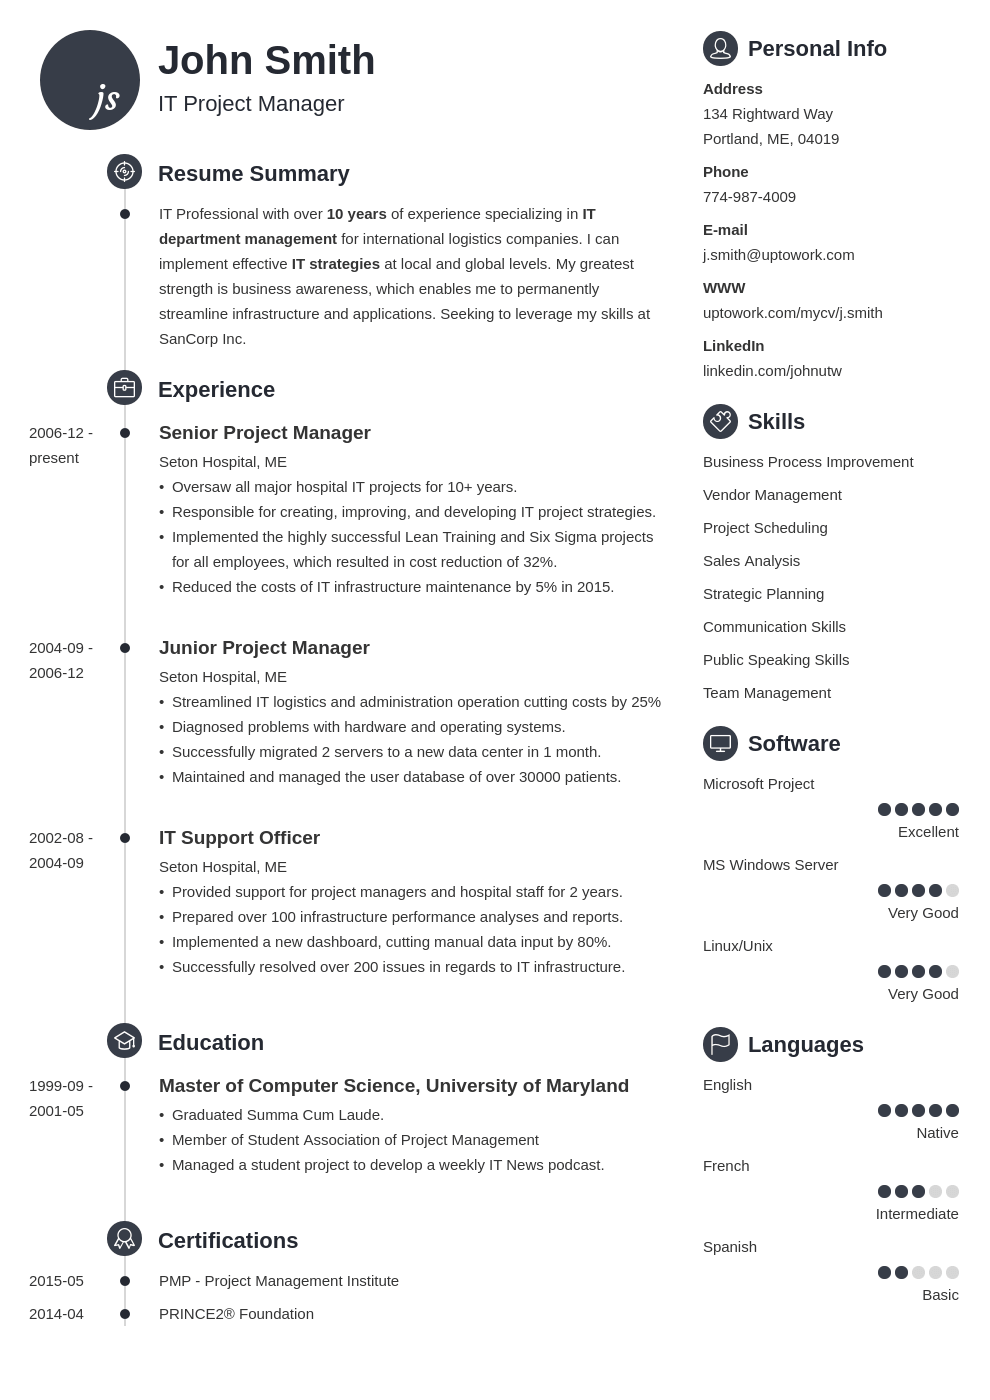 resume Free Resume Template 20 resume templates download create your in 5 minutes us recommended professional template primo